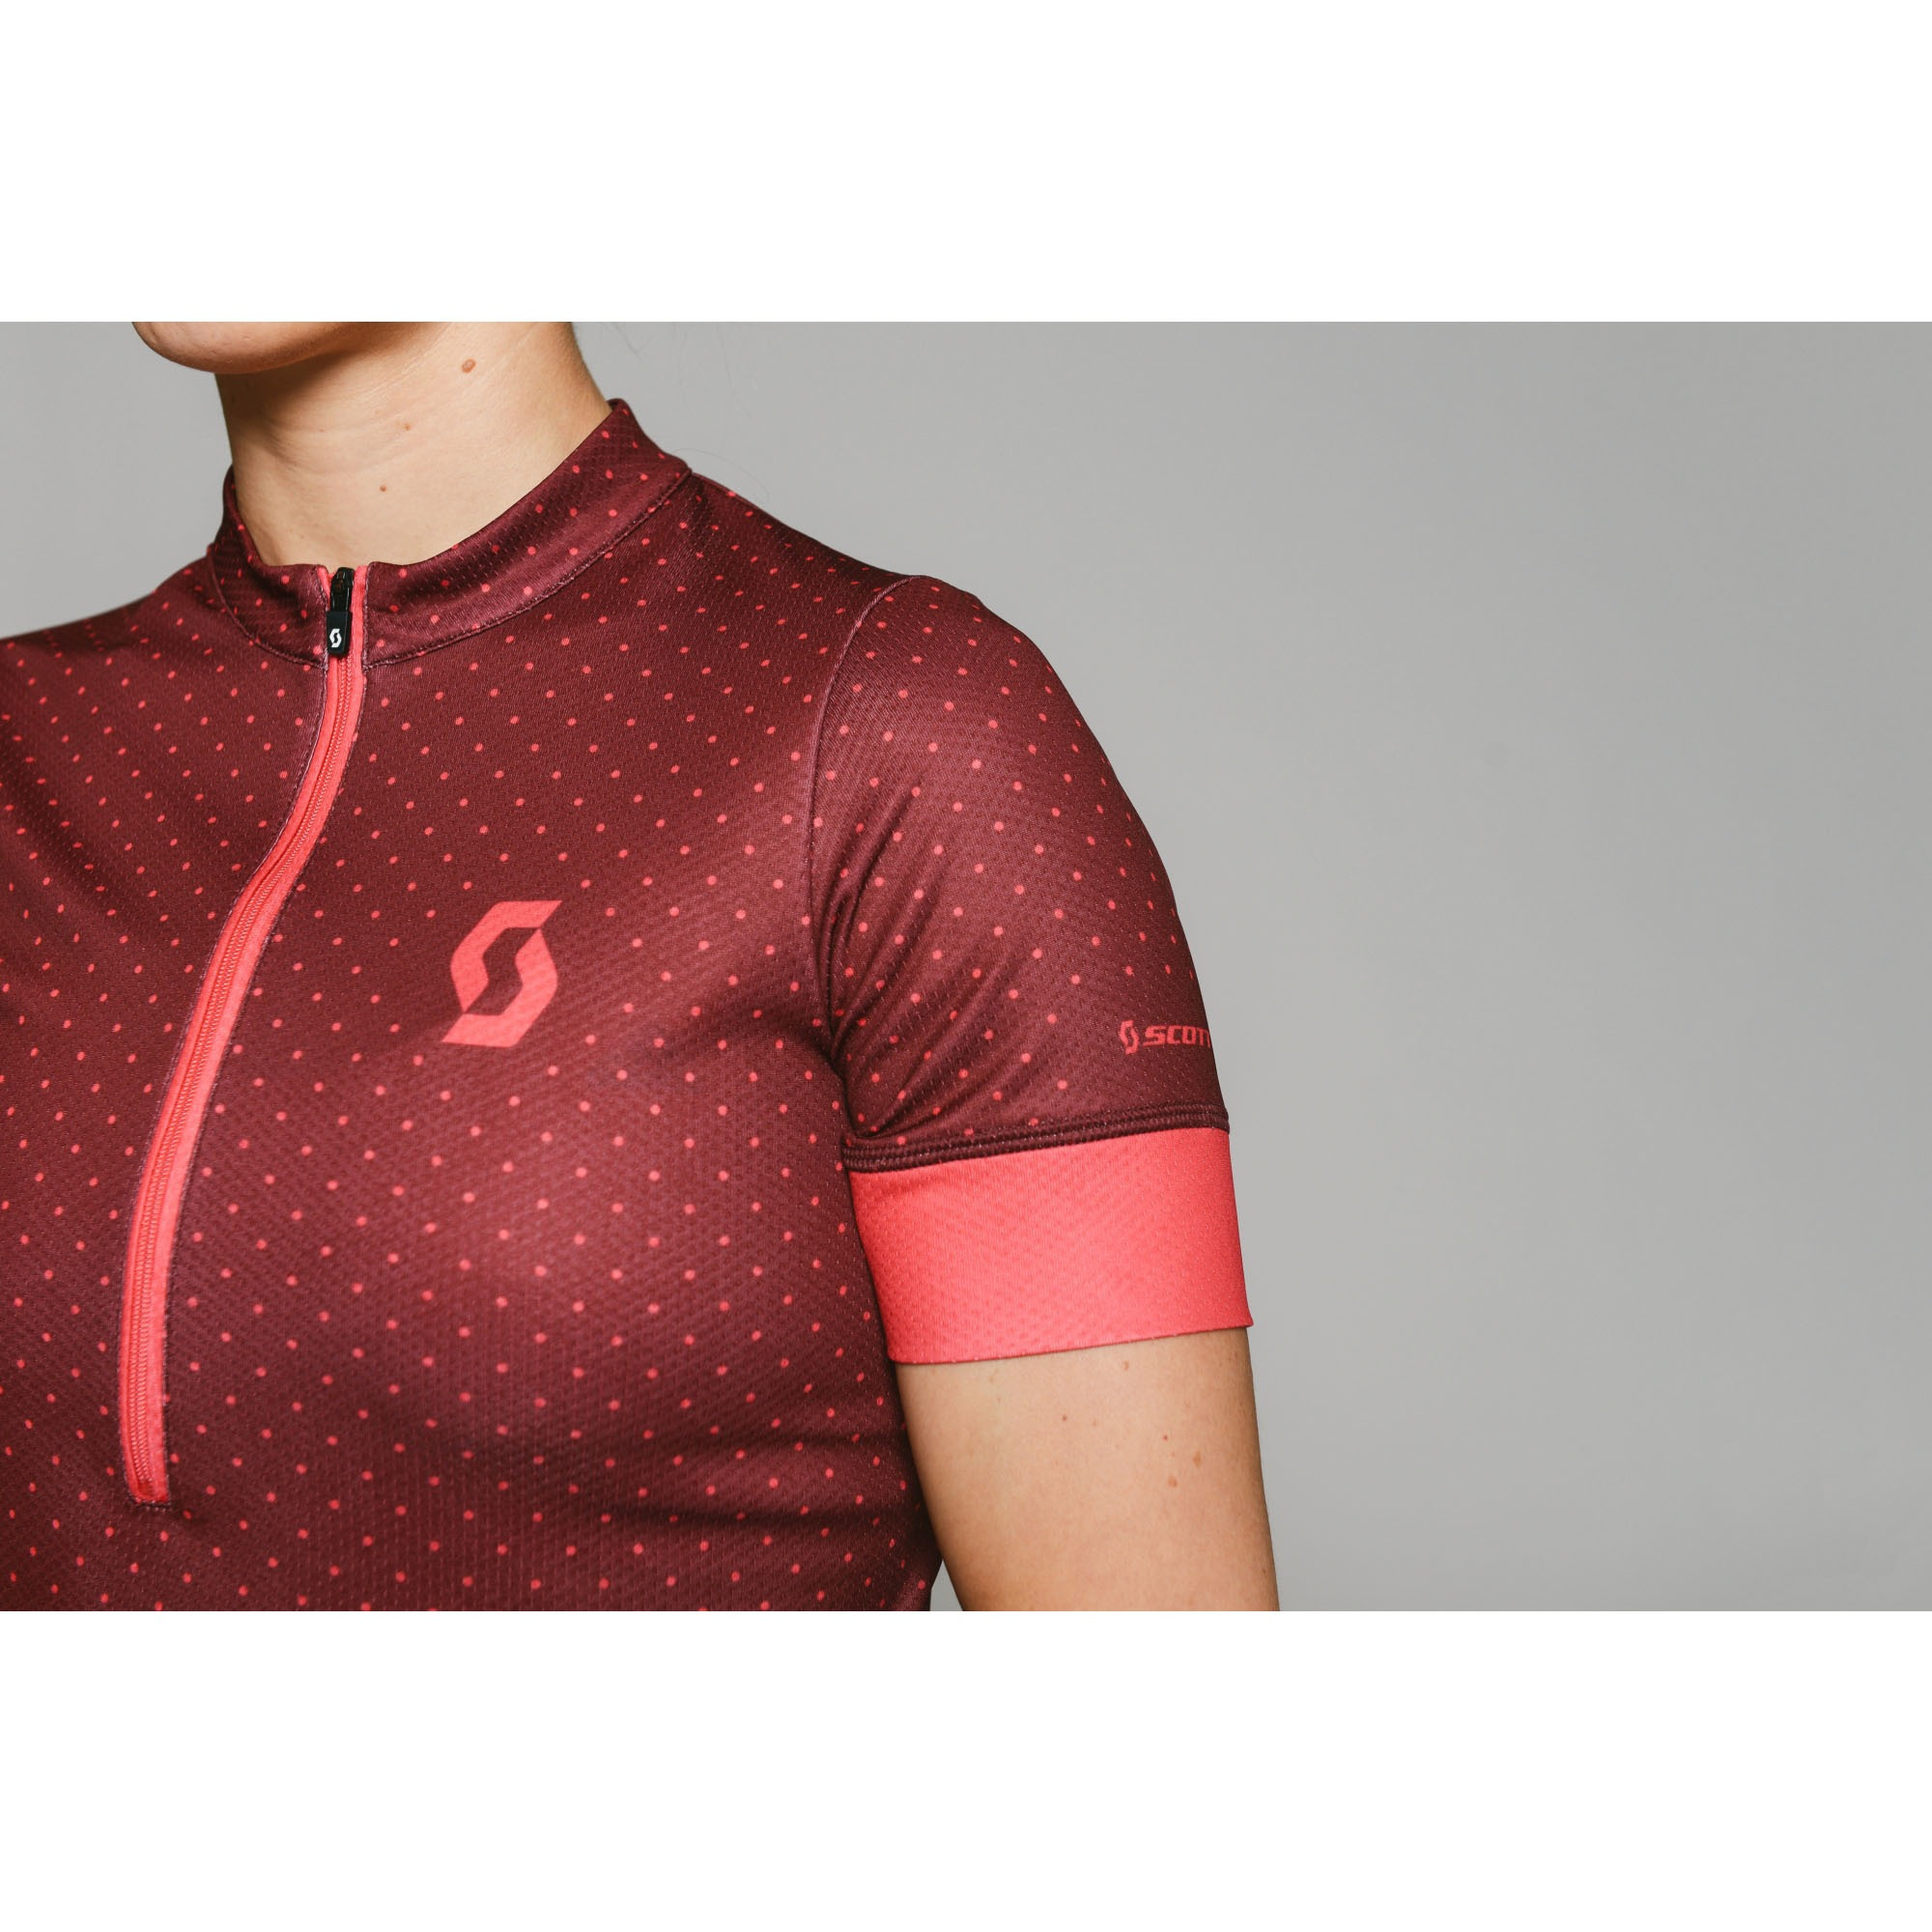 SCOTT Endurance 30 Kurzarm-Damen-Shirt